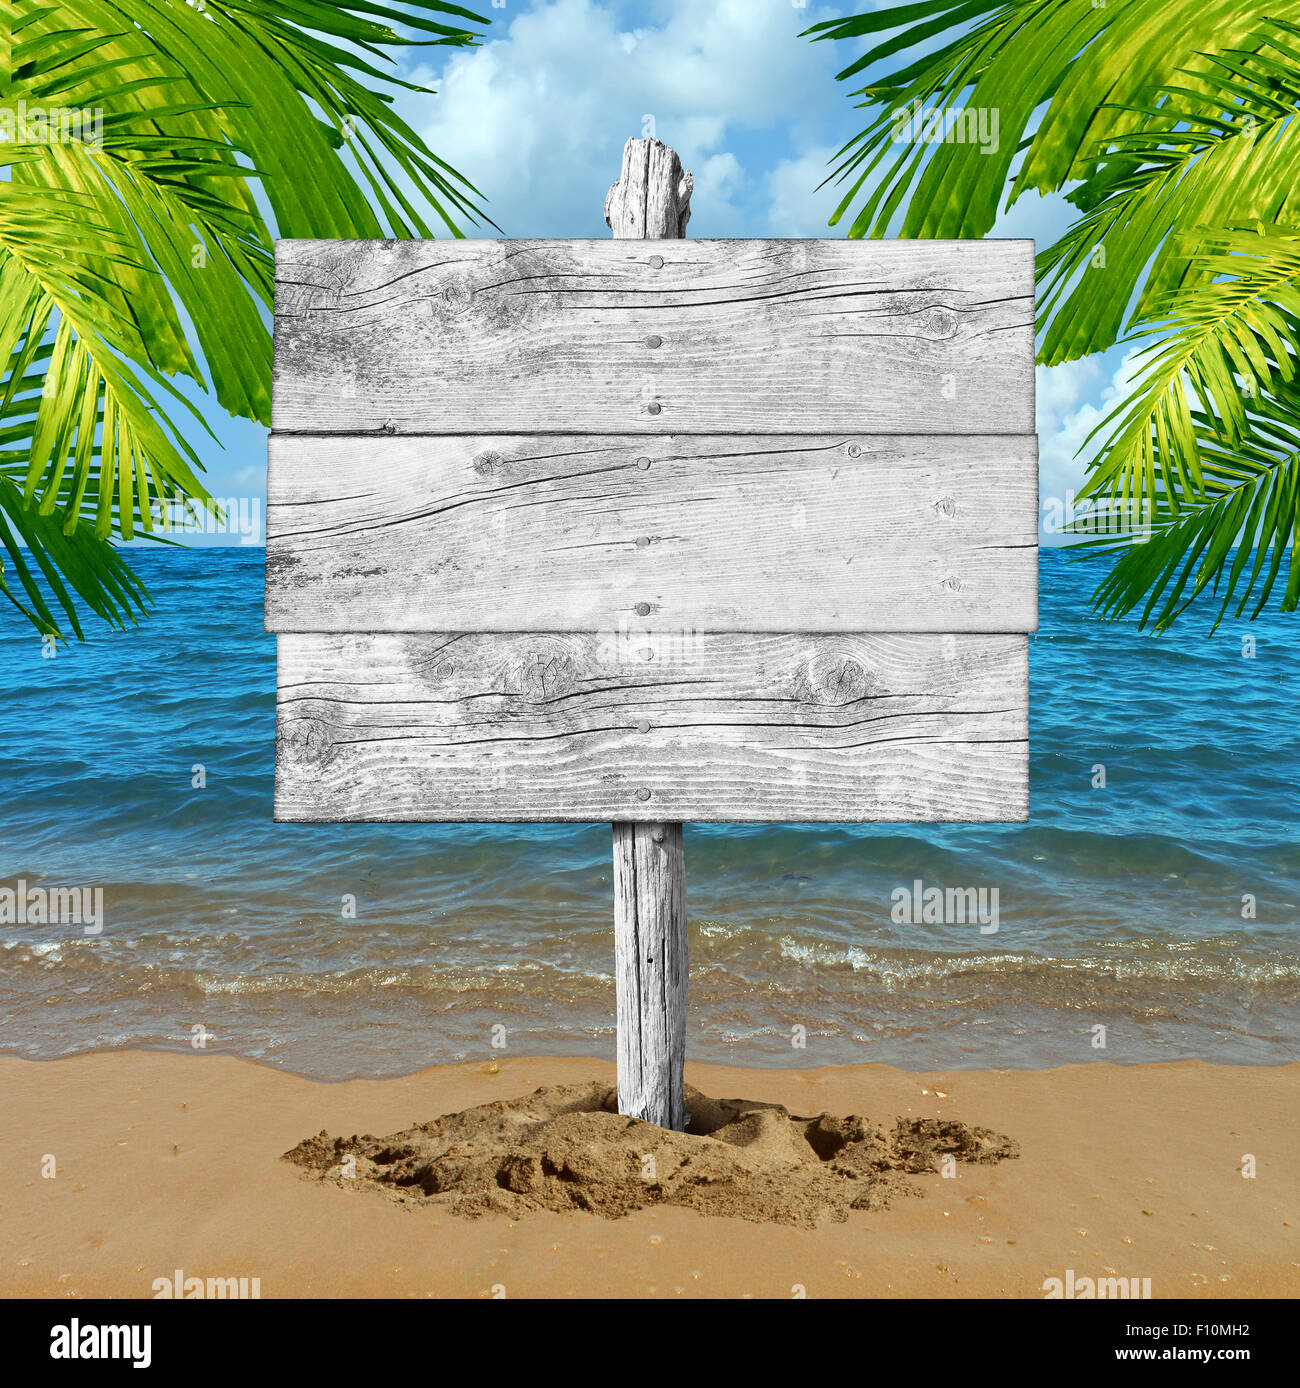 Beach wood sign and tropical vacation blank billboard background as an ocean wave on sand with palm tree leaves - Stock Image